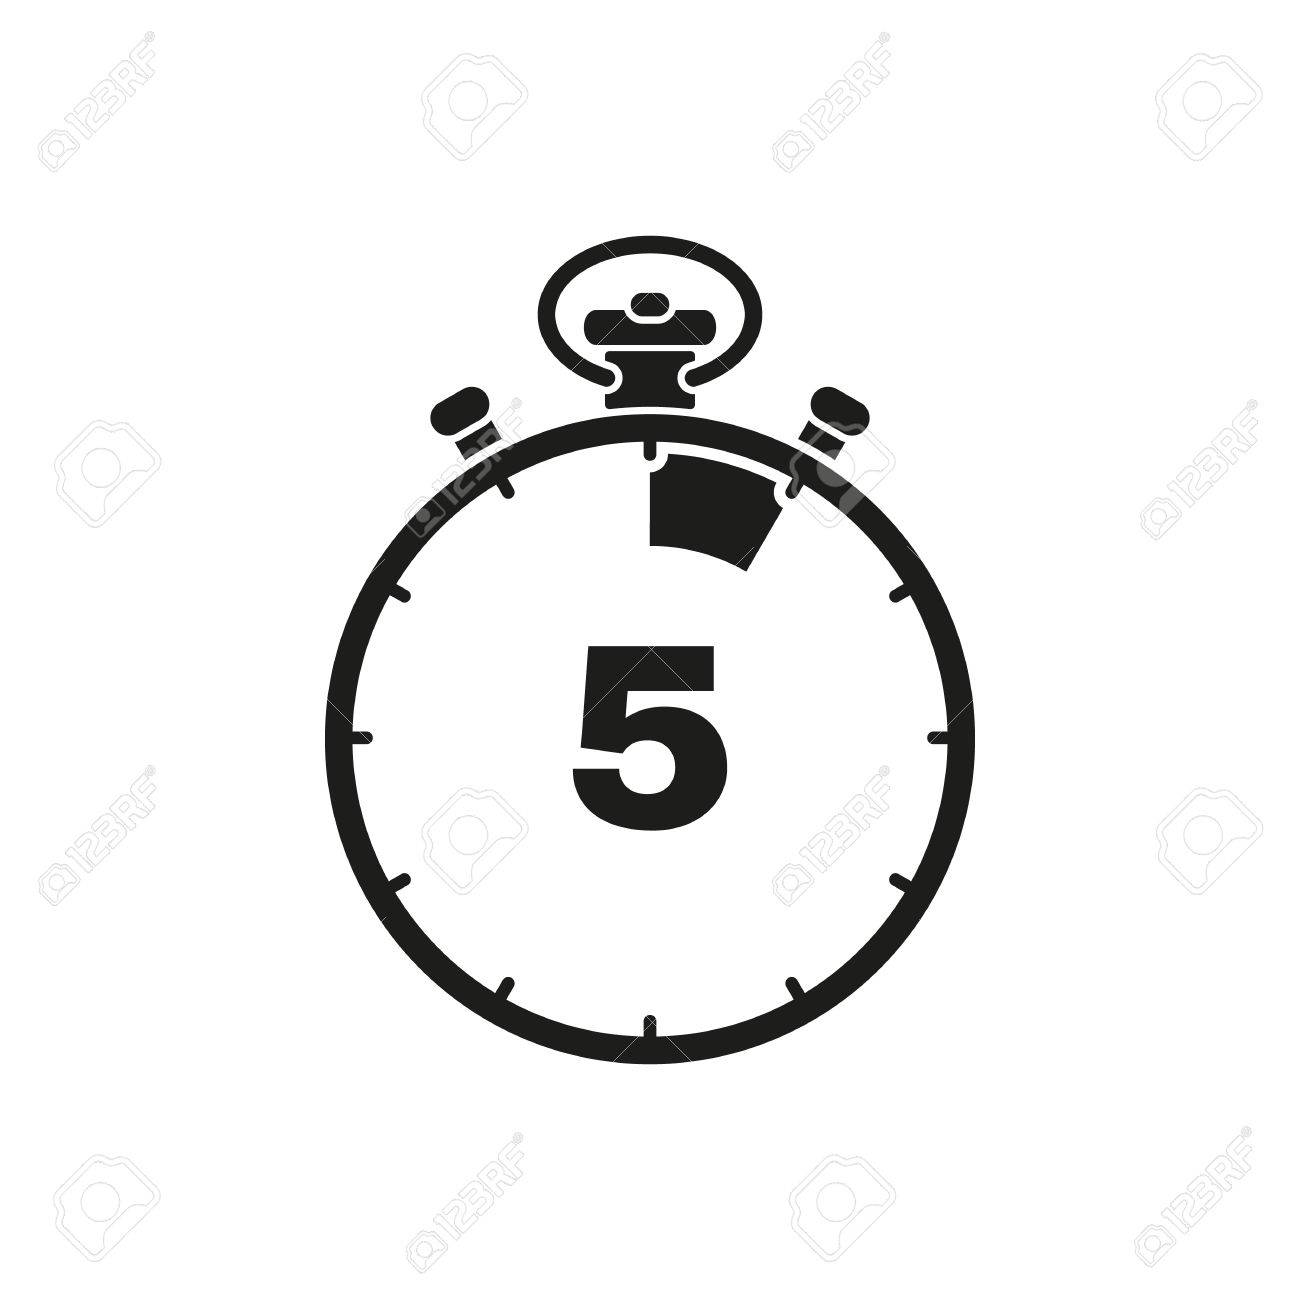 the 5 seconds minutes stopwatch icon clock and watch timer